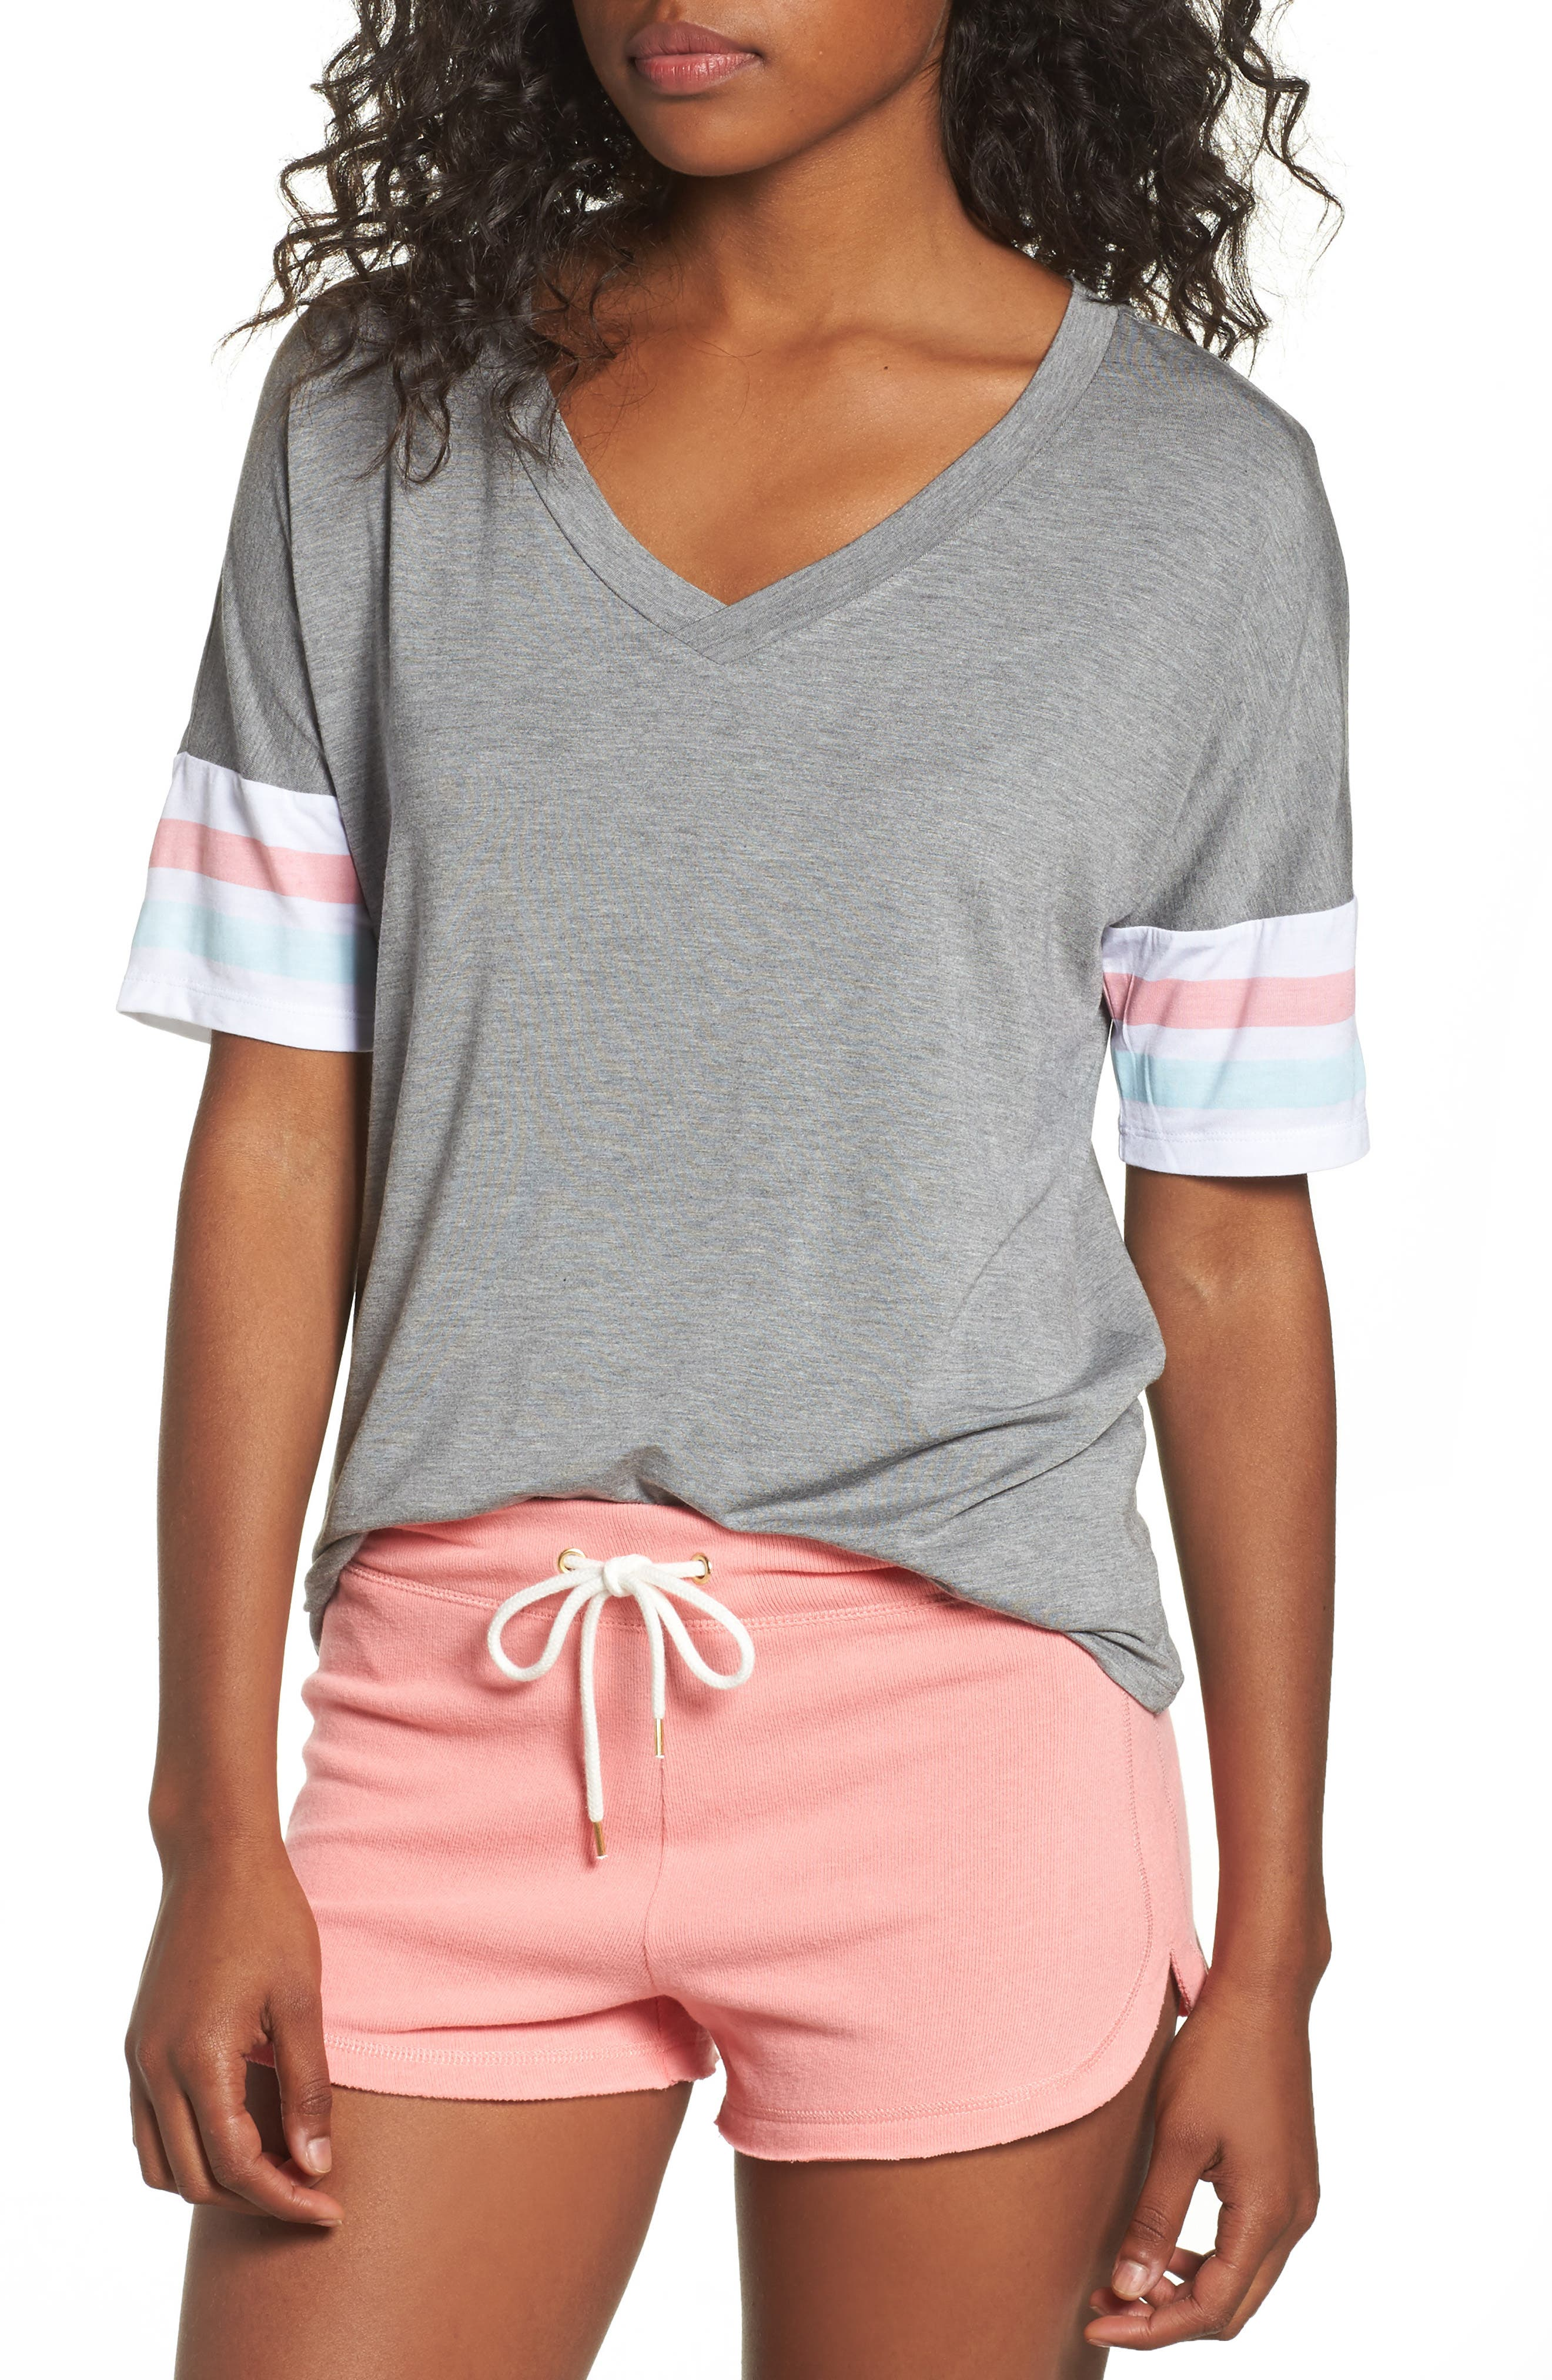 Main Image - Honeydew Intimates Relaxin' Lounge Tee